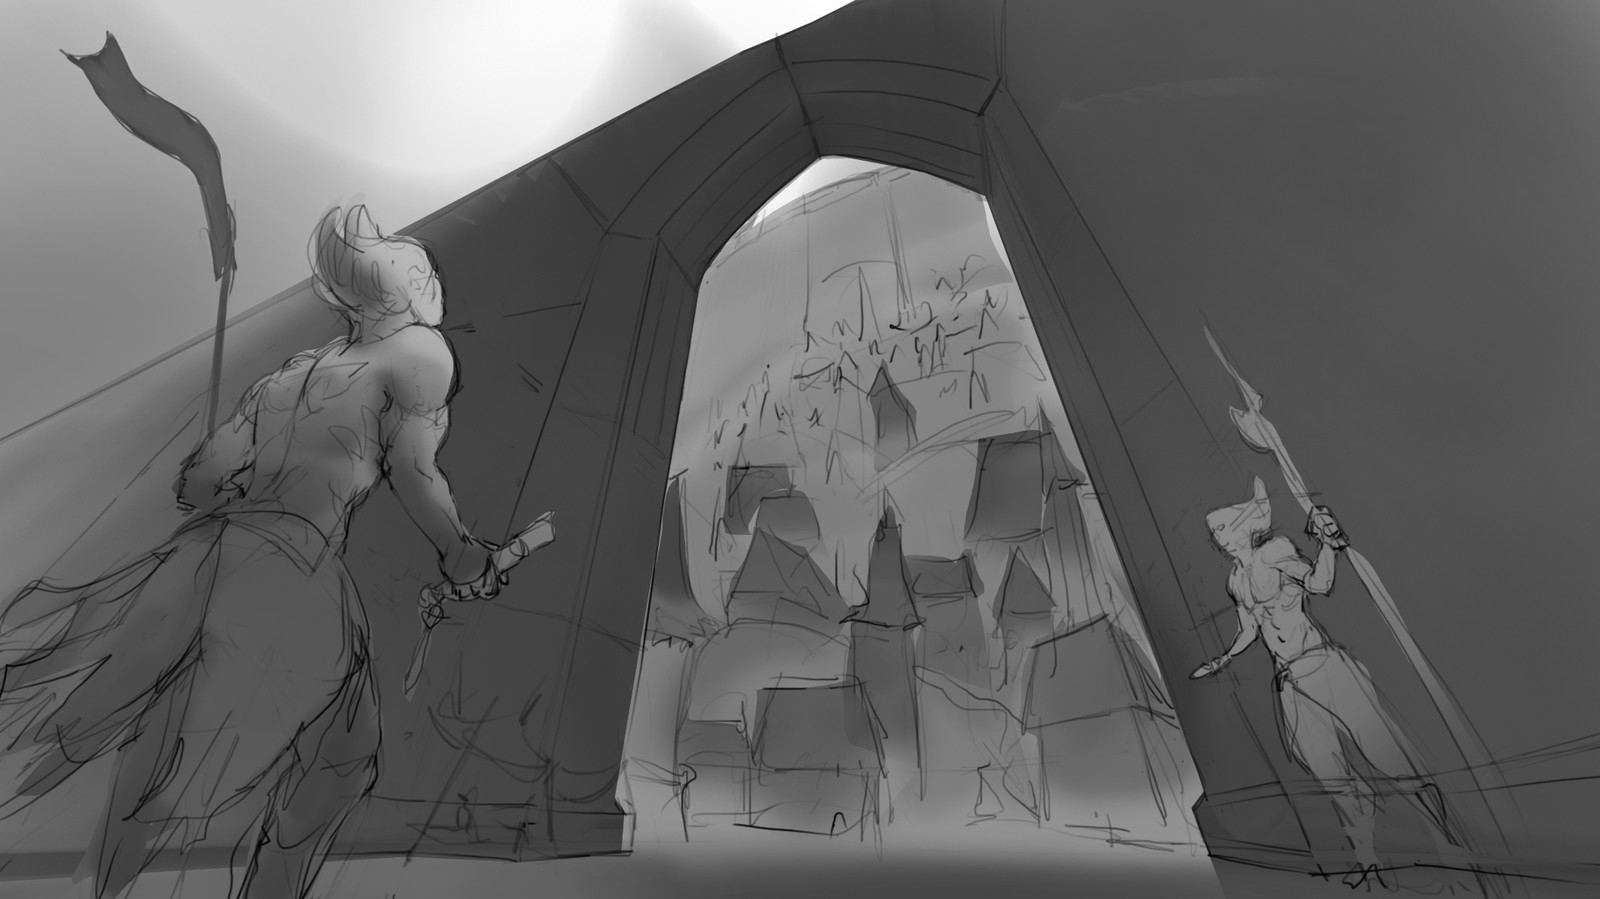 second draft. I liked this perspective since i wanted to show a close up of the character while focusing on the massive gate and city beyond.